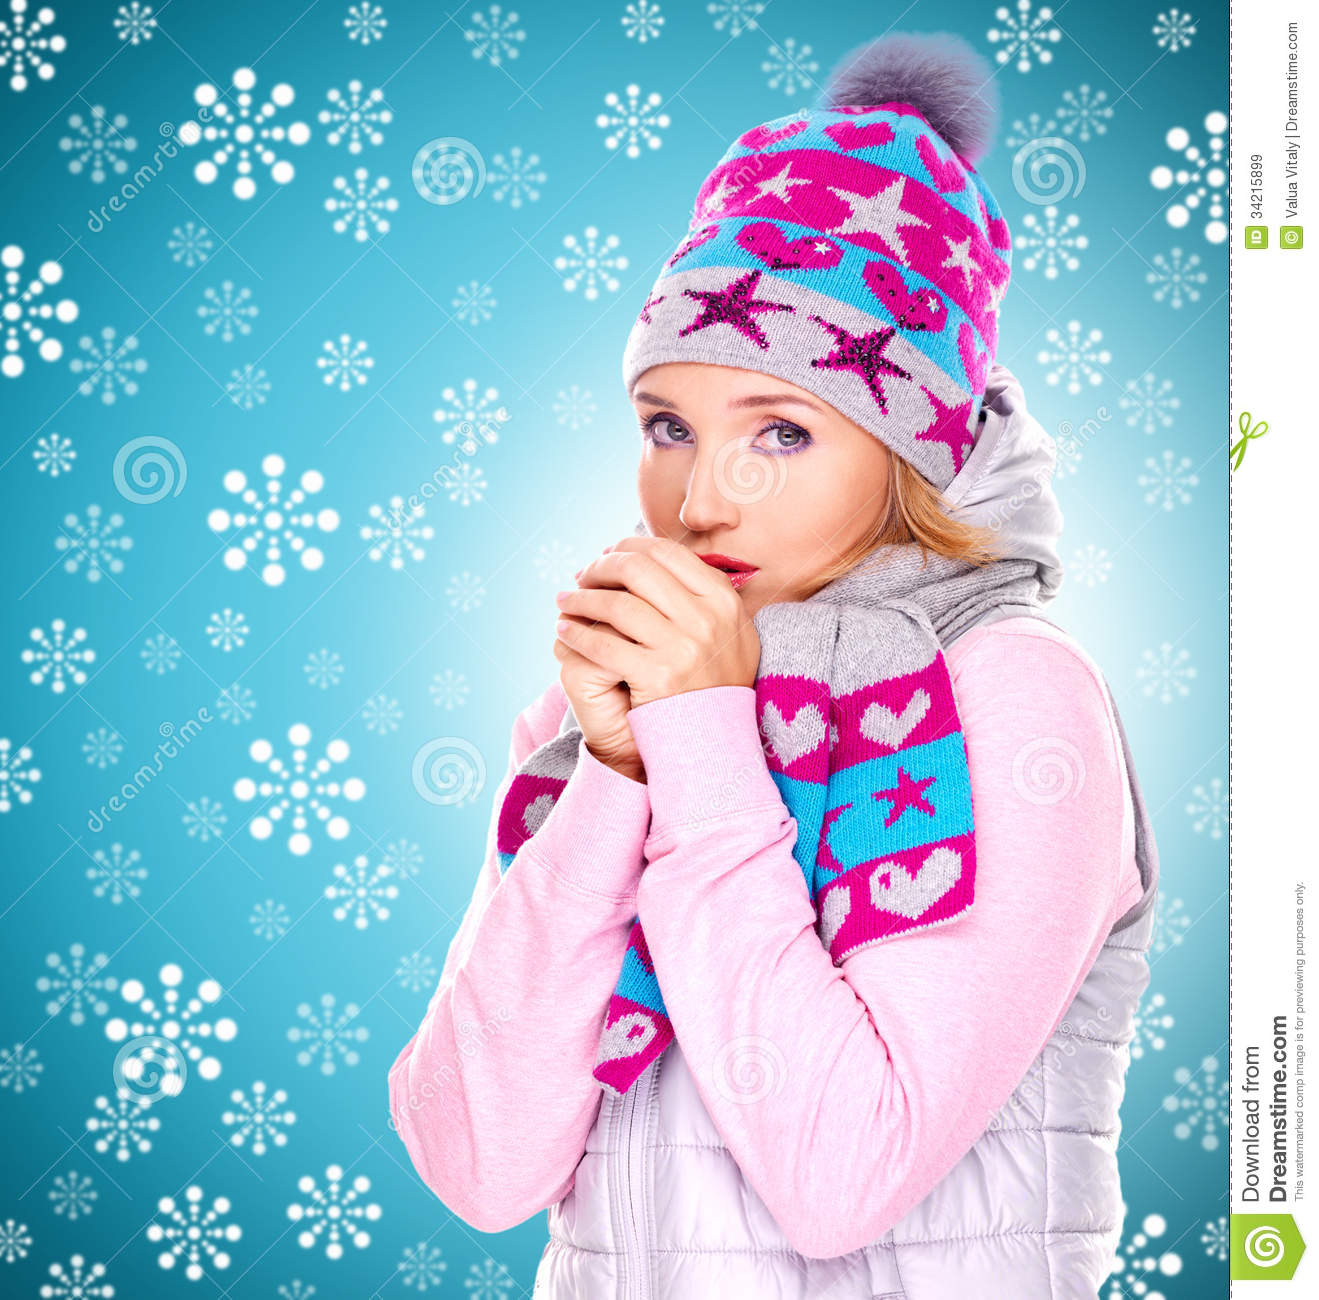 Hats, Cold Weather Clothing Woman, Fashion Style, Winter Style, Cozy Winter Outfits, Beanie, Scarves, Scarfs, Warm Clothing